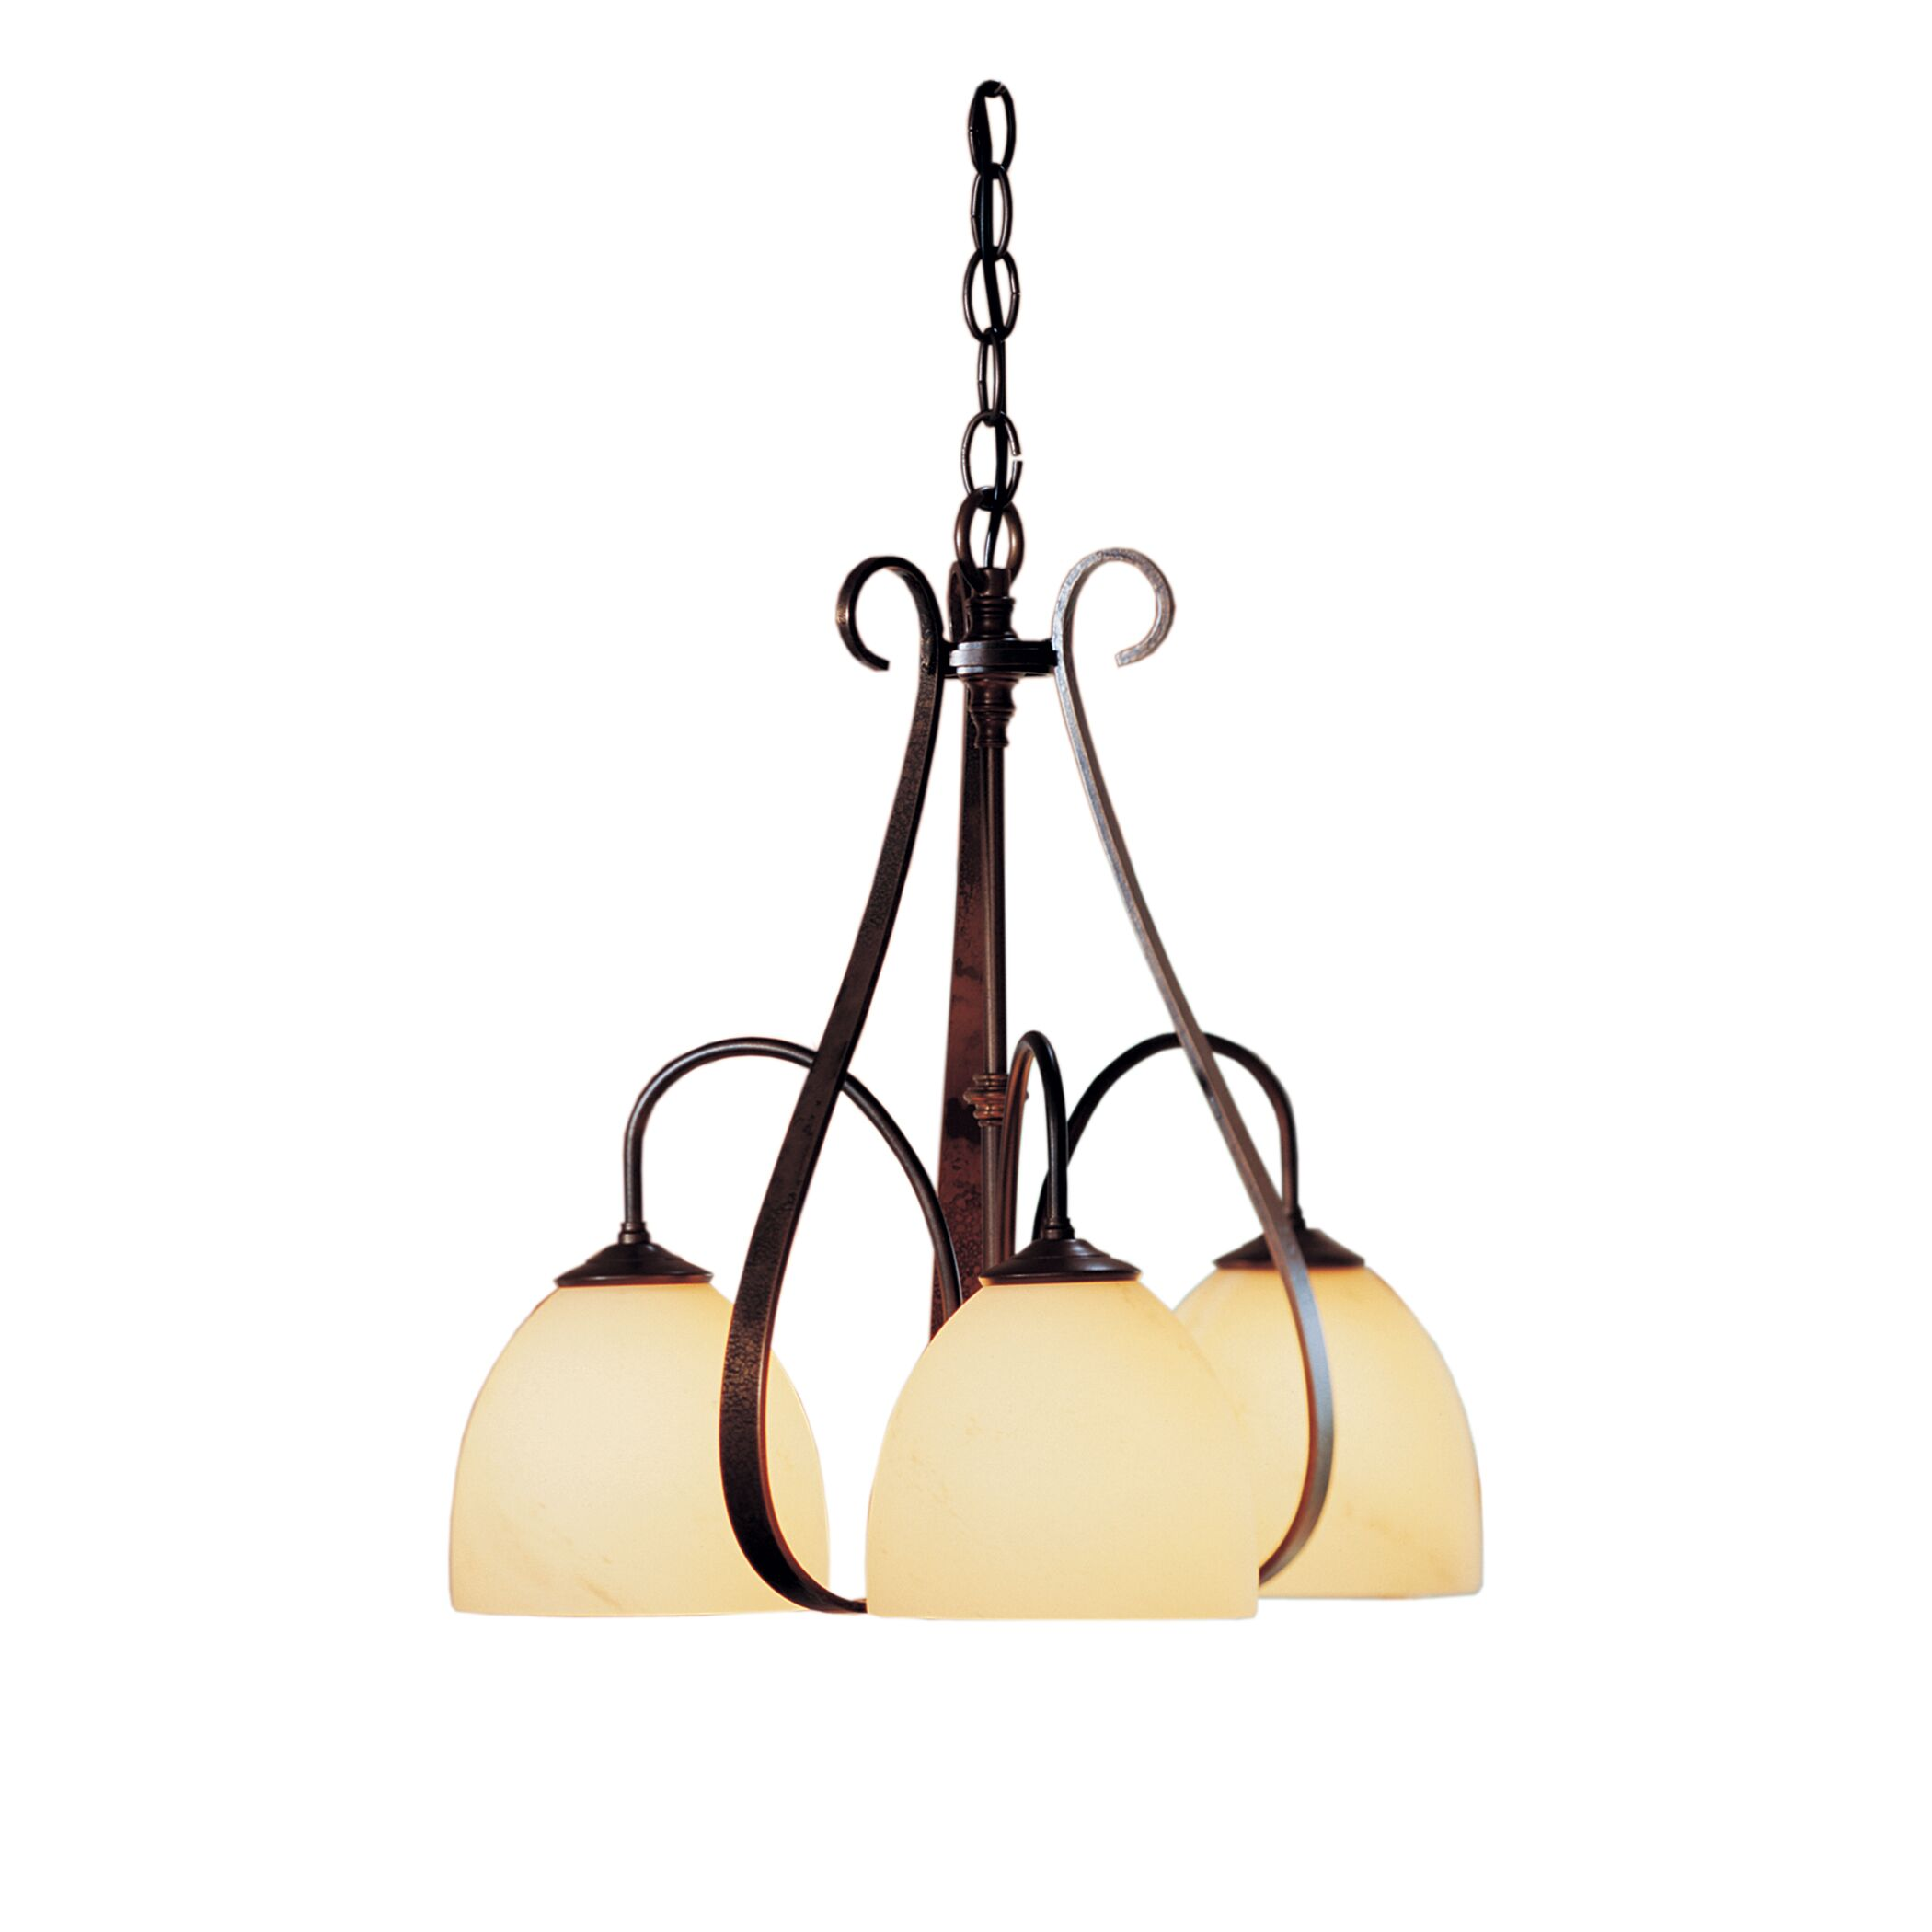 3-Light Shaded Chandelier Finish: Natural lron, Shade Shape: Dome, Shade Color: Stone